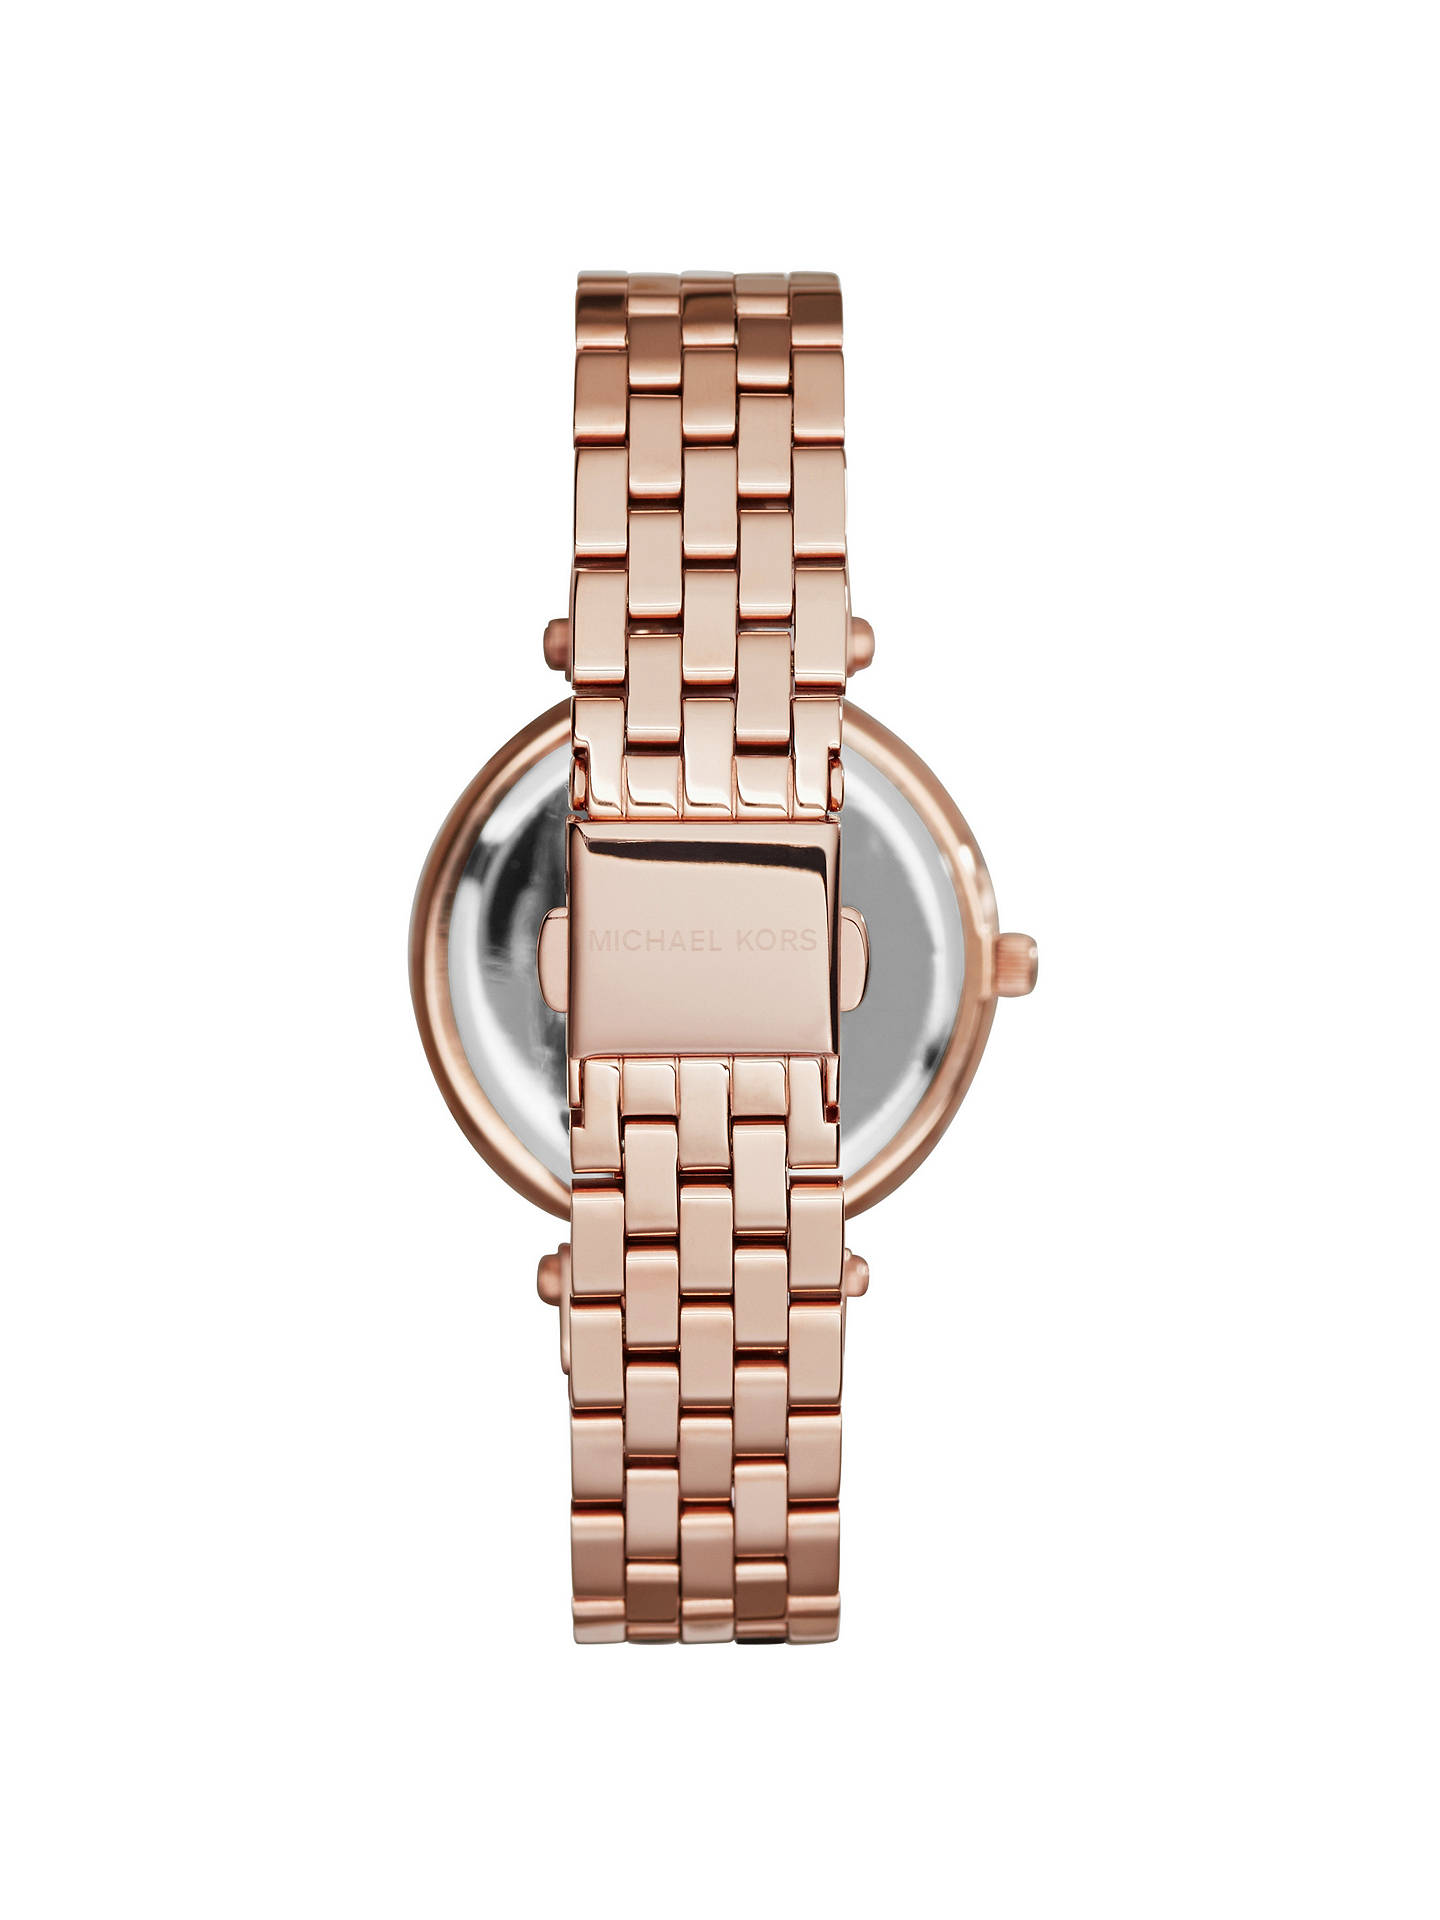 BuyMichael Kors MK3366 Women's Mini Darci Bracelet Strap Watch, Rose Gold Online at johnlewis.com